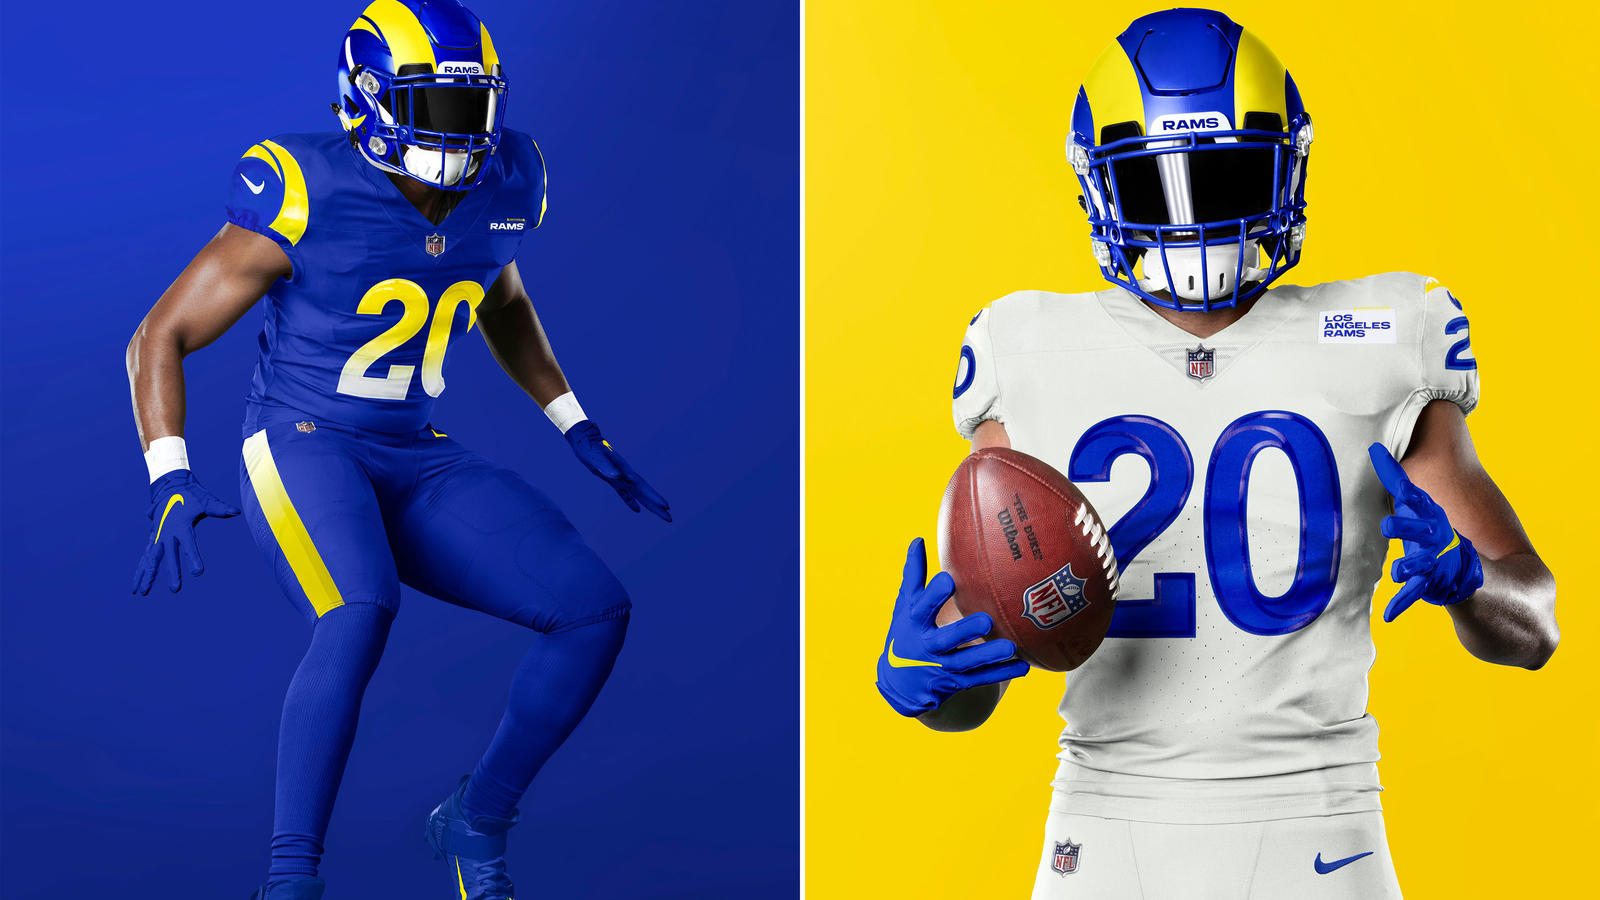 los-angeles-rams-uniforms-2020-official-images